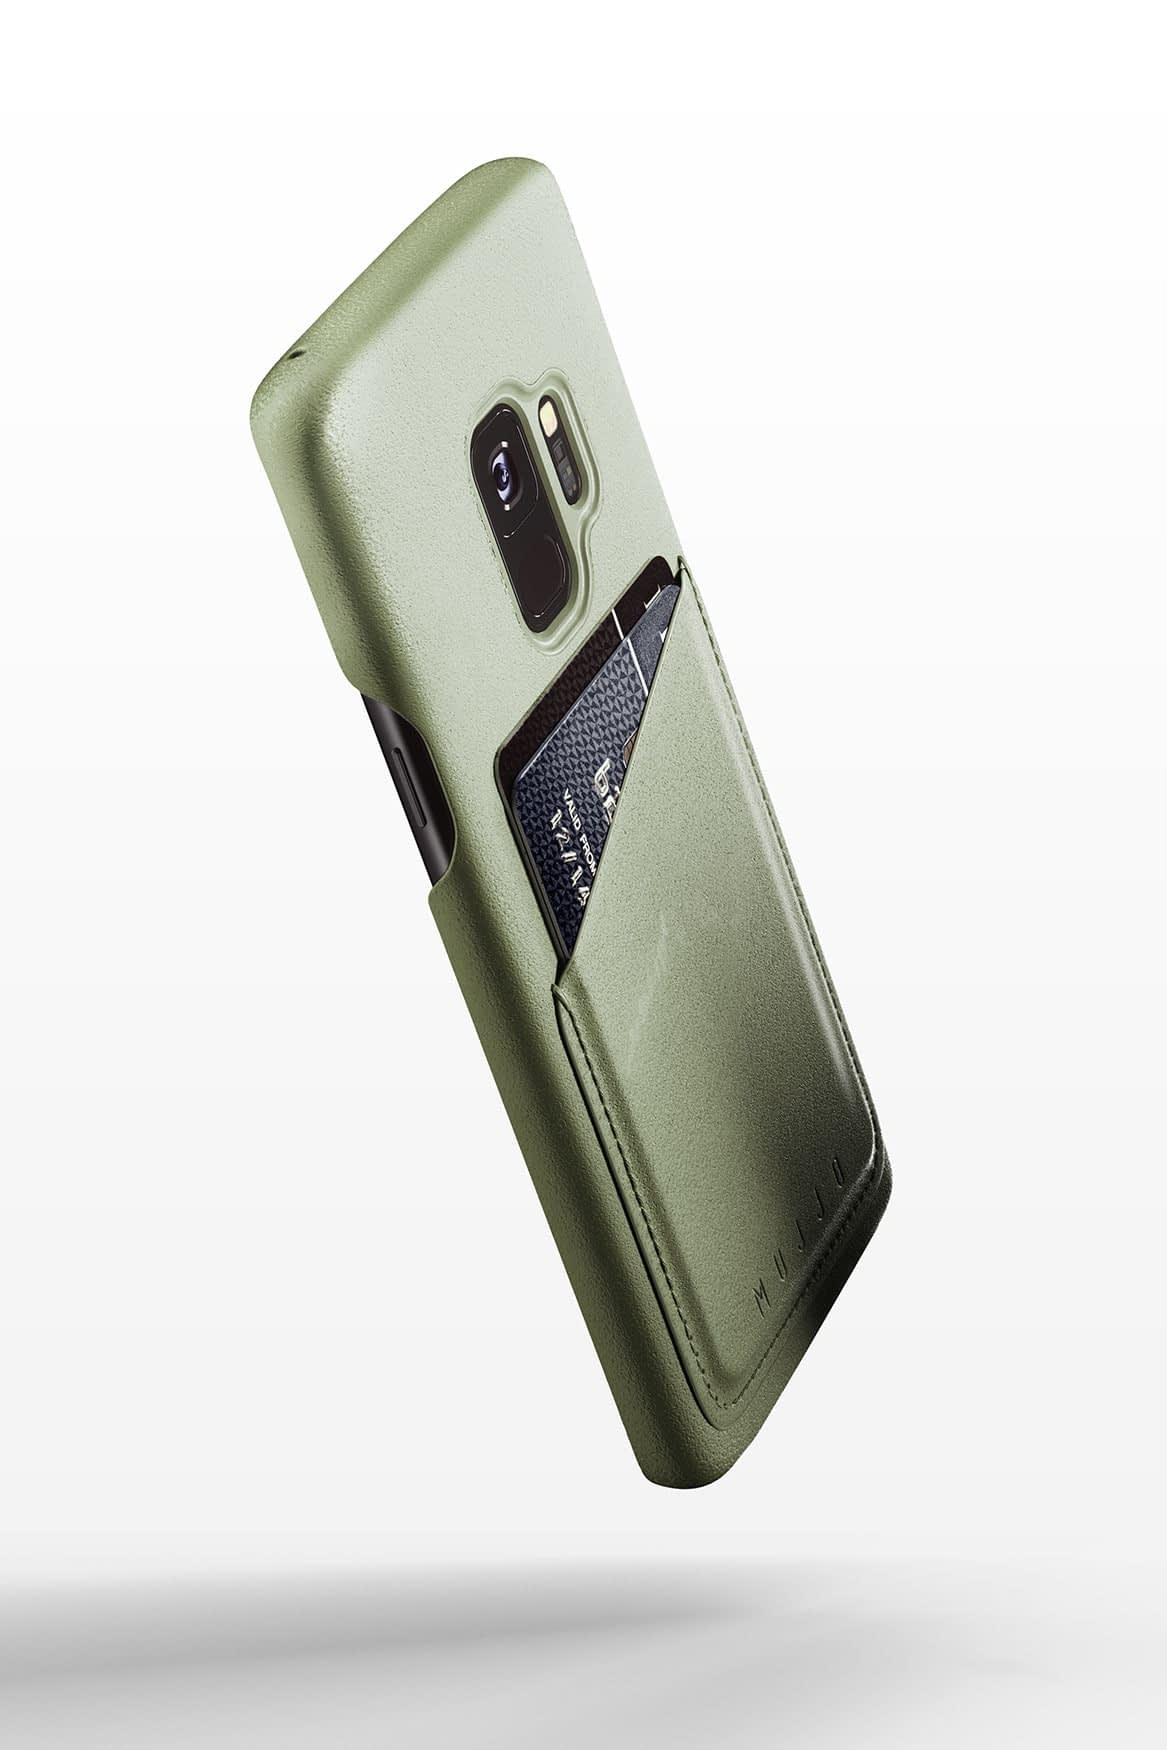 Full leather wallet case for Galaxy S9 Olive 01 1